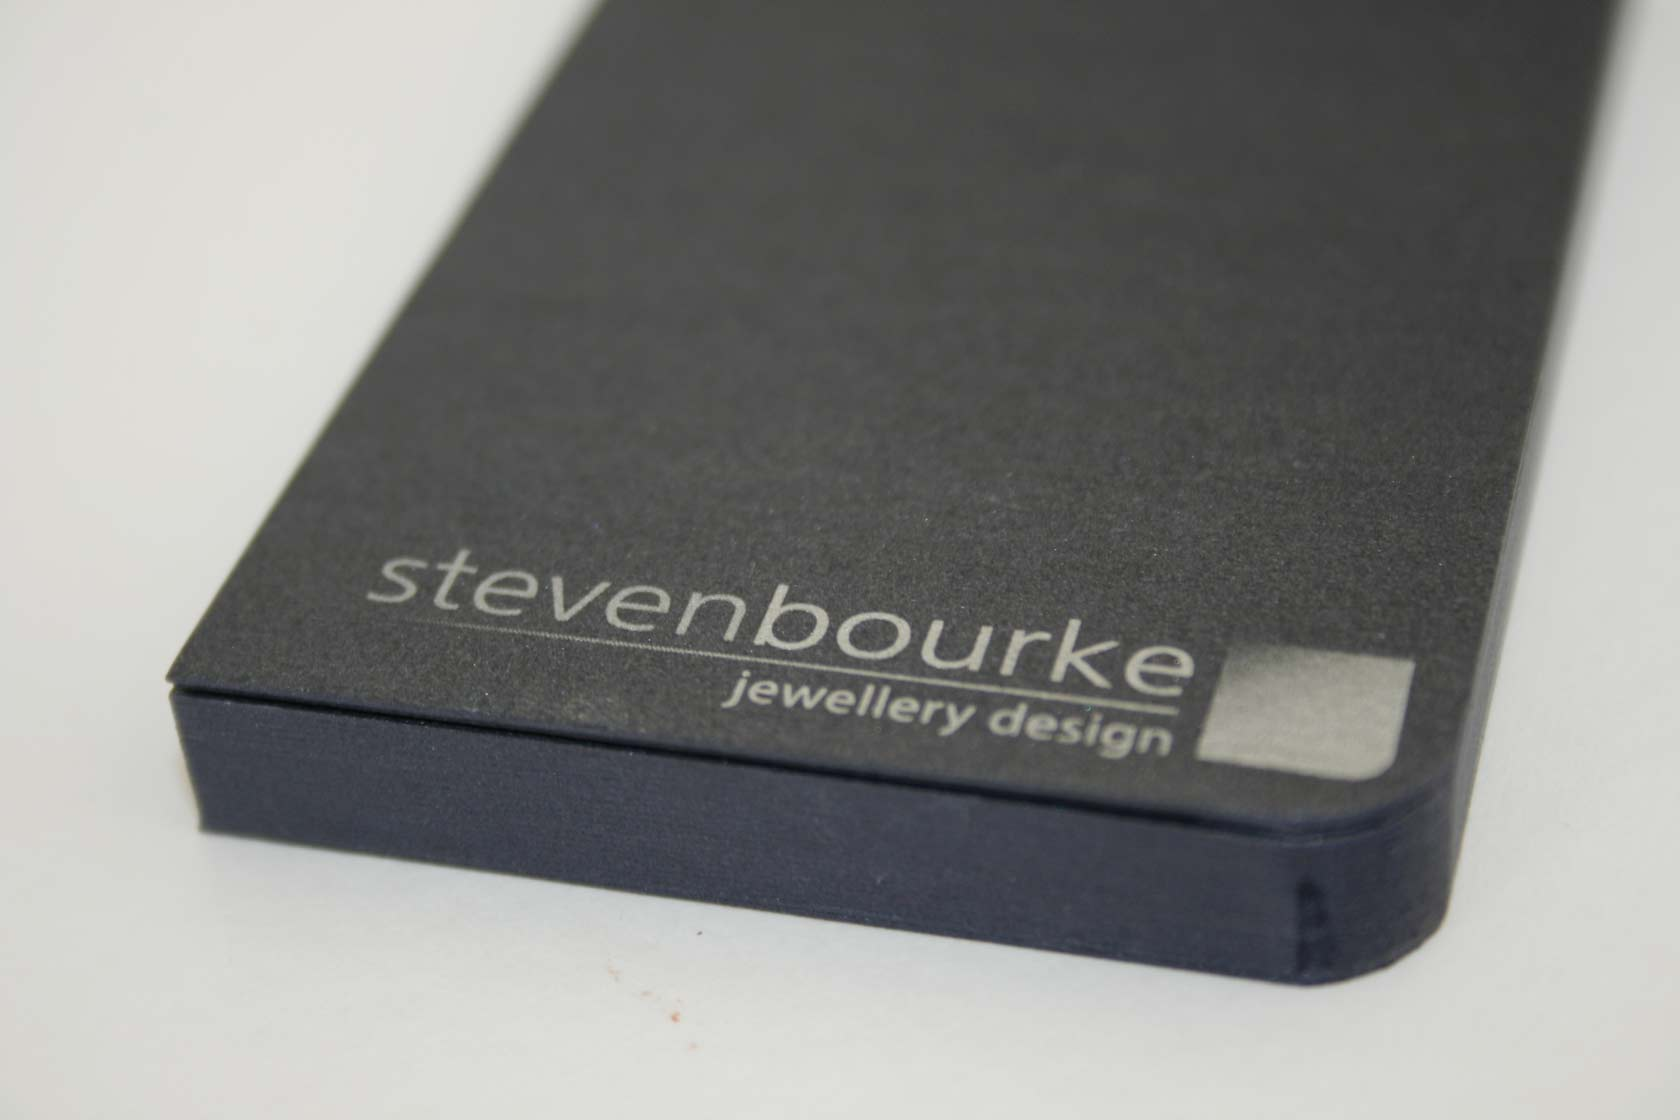 Steven Bourke Jewellers Business Cards - Two Heads Website & Graphic ...